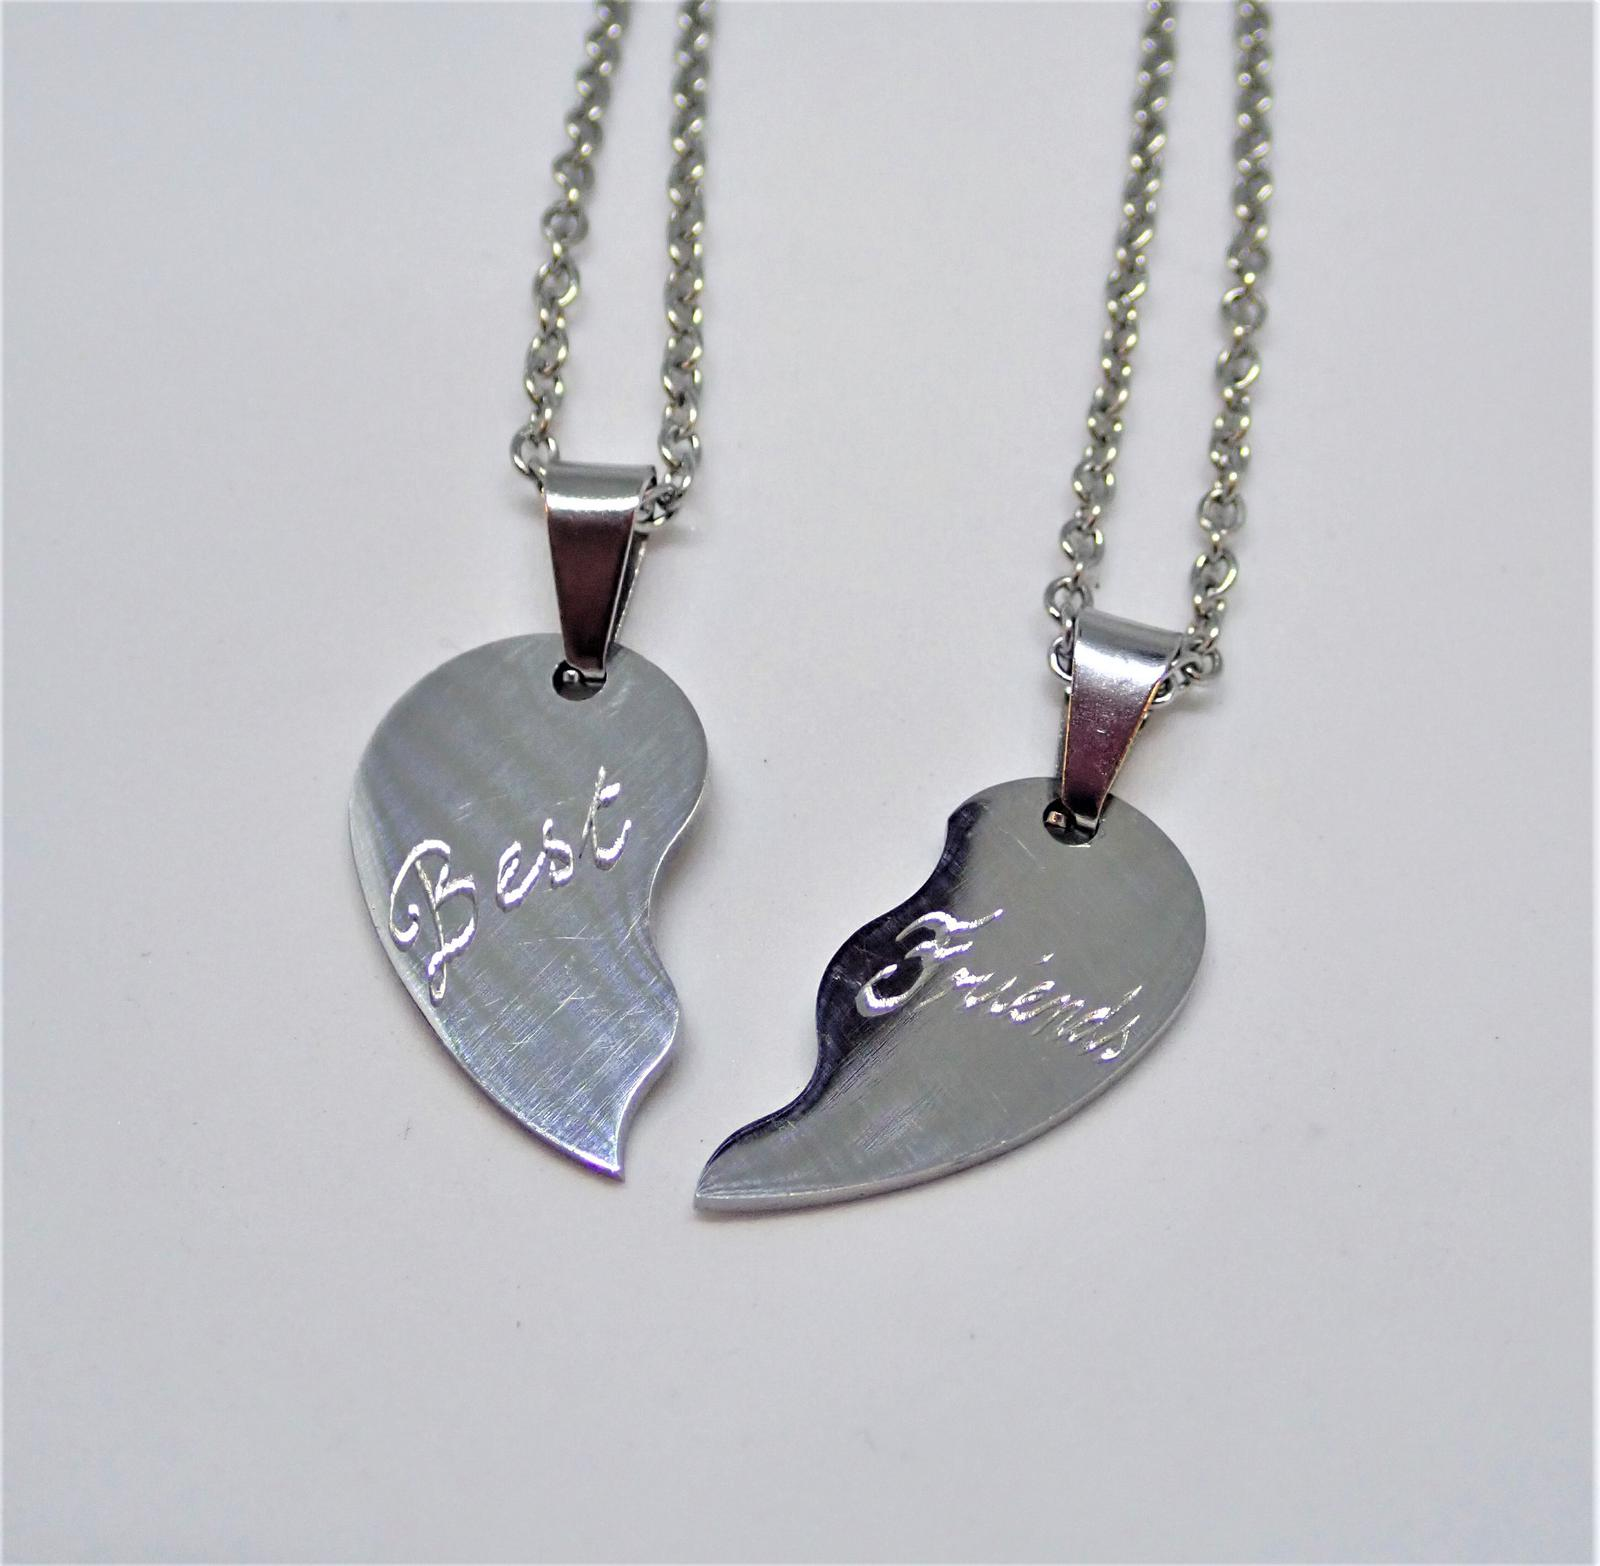 Hand Engraved Personalised Stainless Steel Necklaces